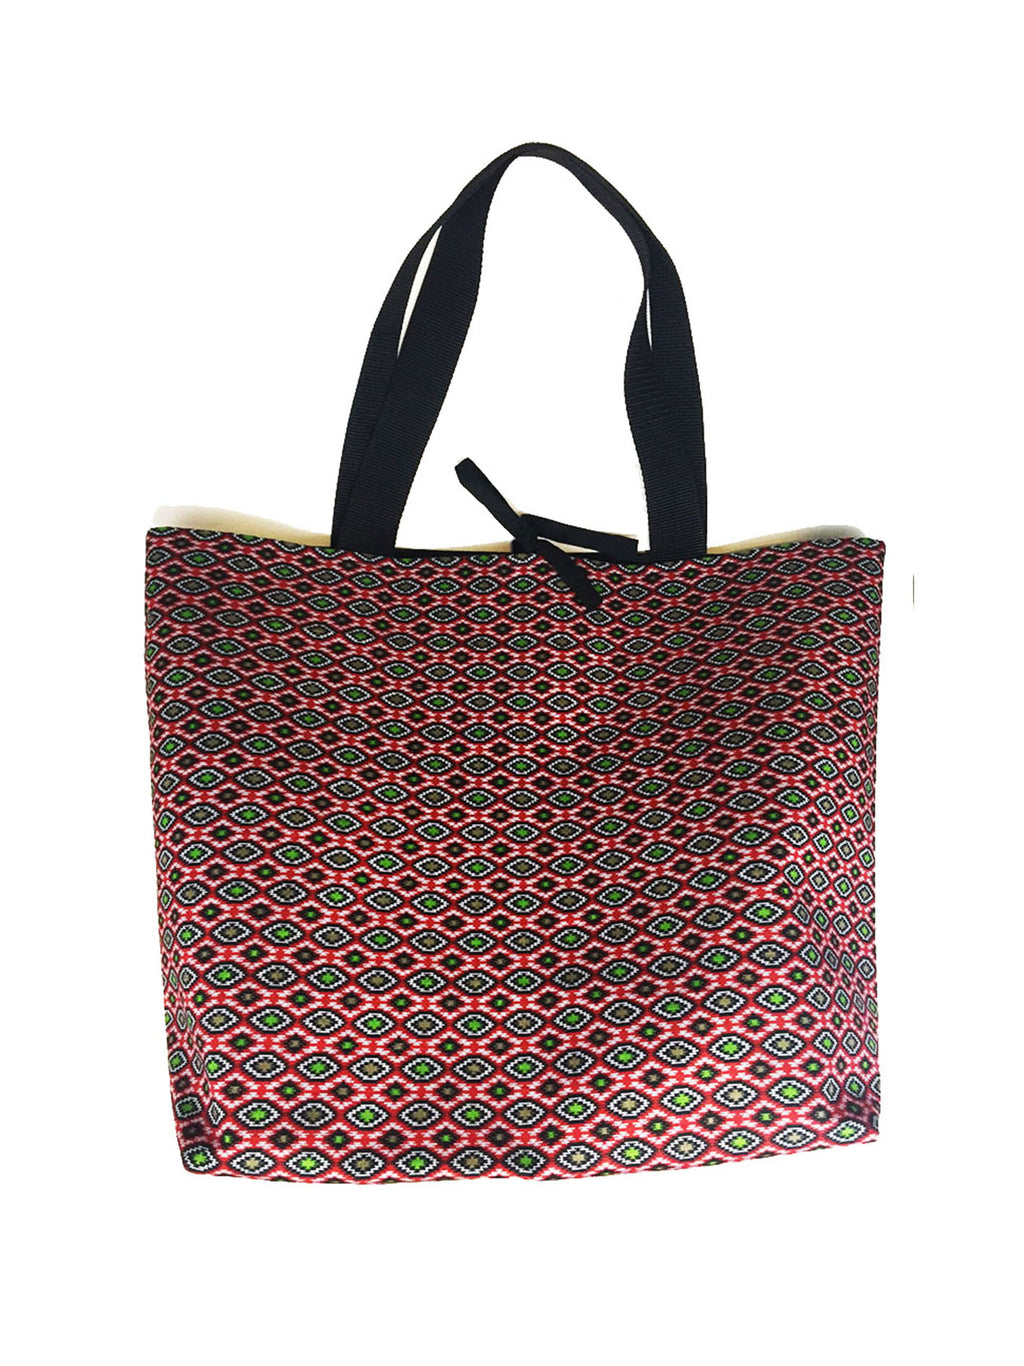 CWO Batik Tote Bag (Red)